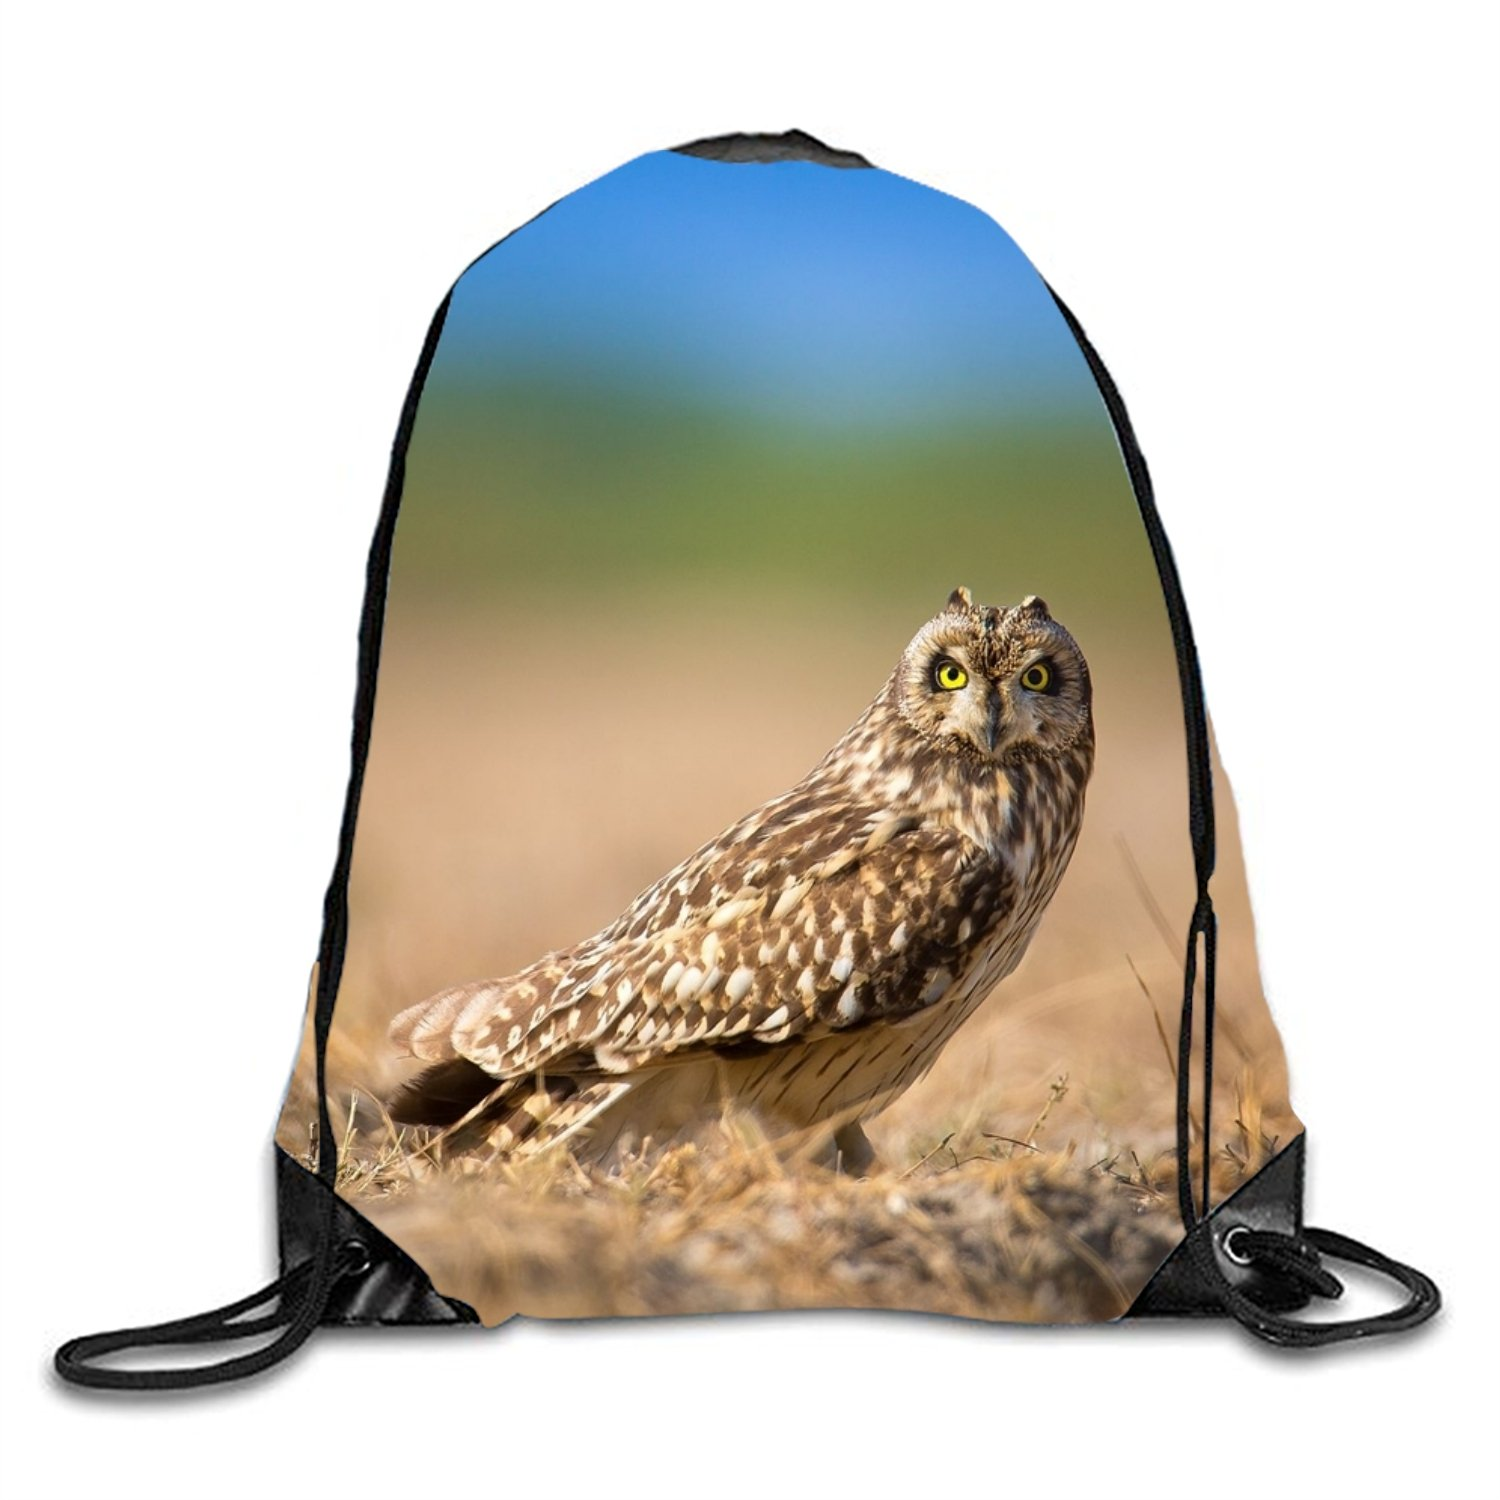 Short Eared Owl 3D Print Drawstring Backpack Sport Gym Bag Daypackon by phjyjy (Image #1)